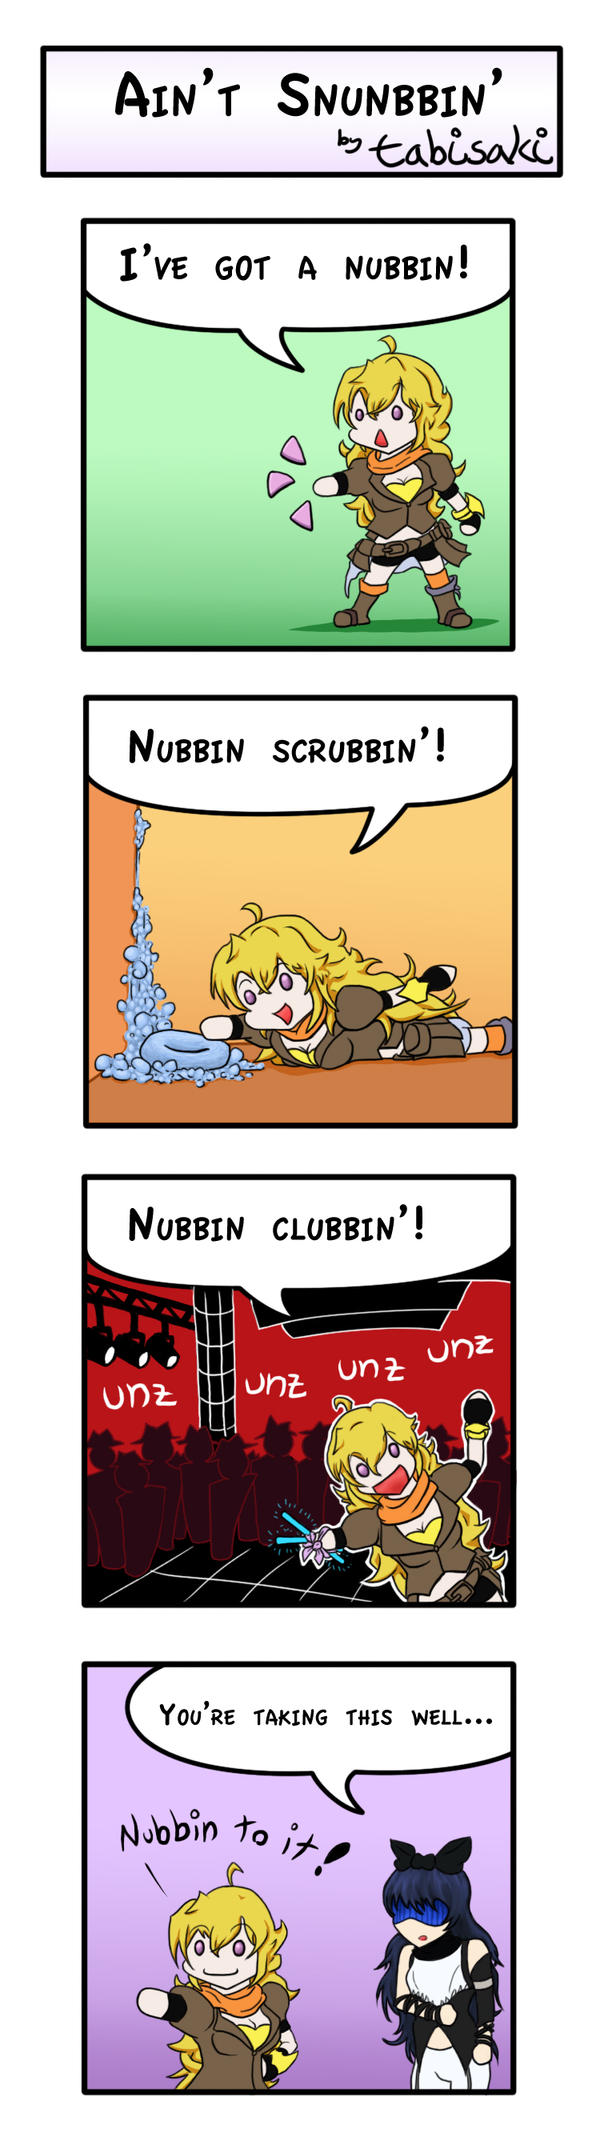 Awesome Things To Buy >> RWBY Comic: Ain't Snubbin' by tabisaki on DeviantArt